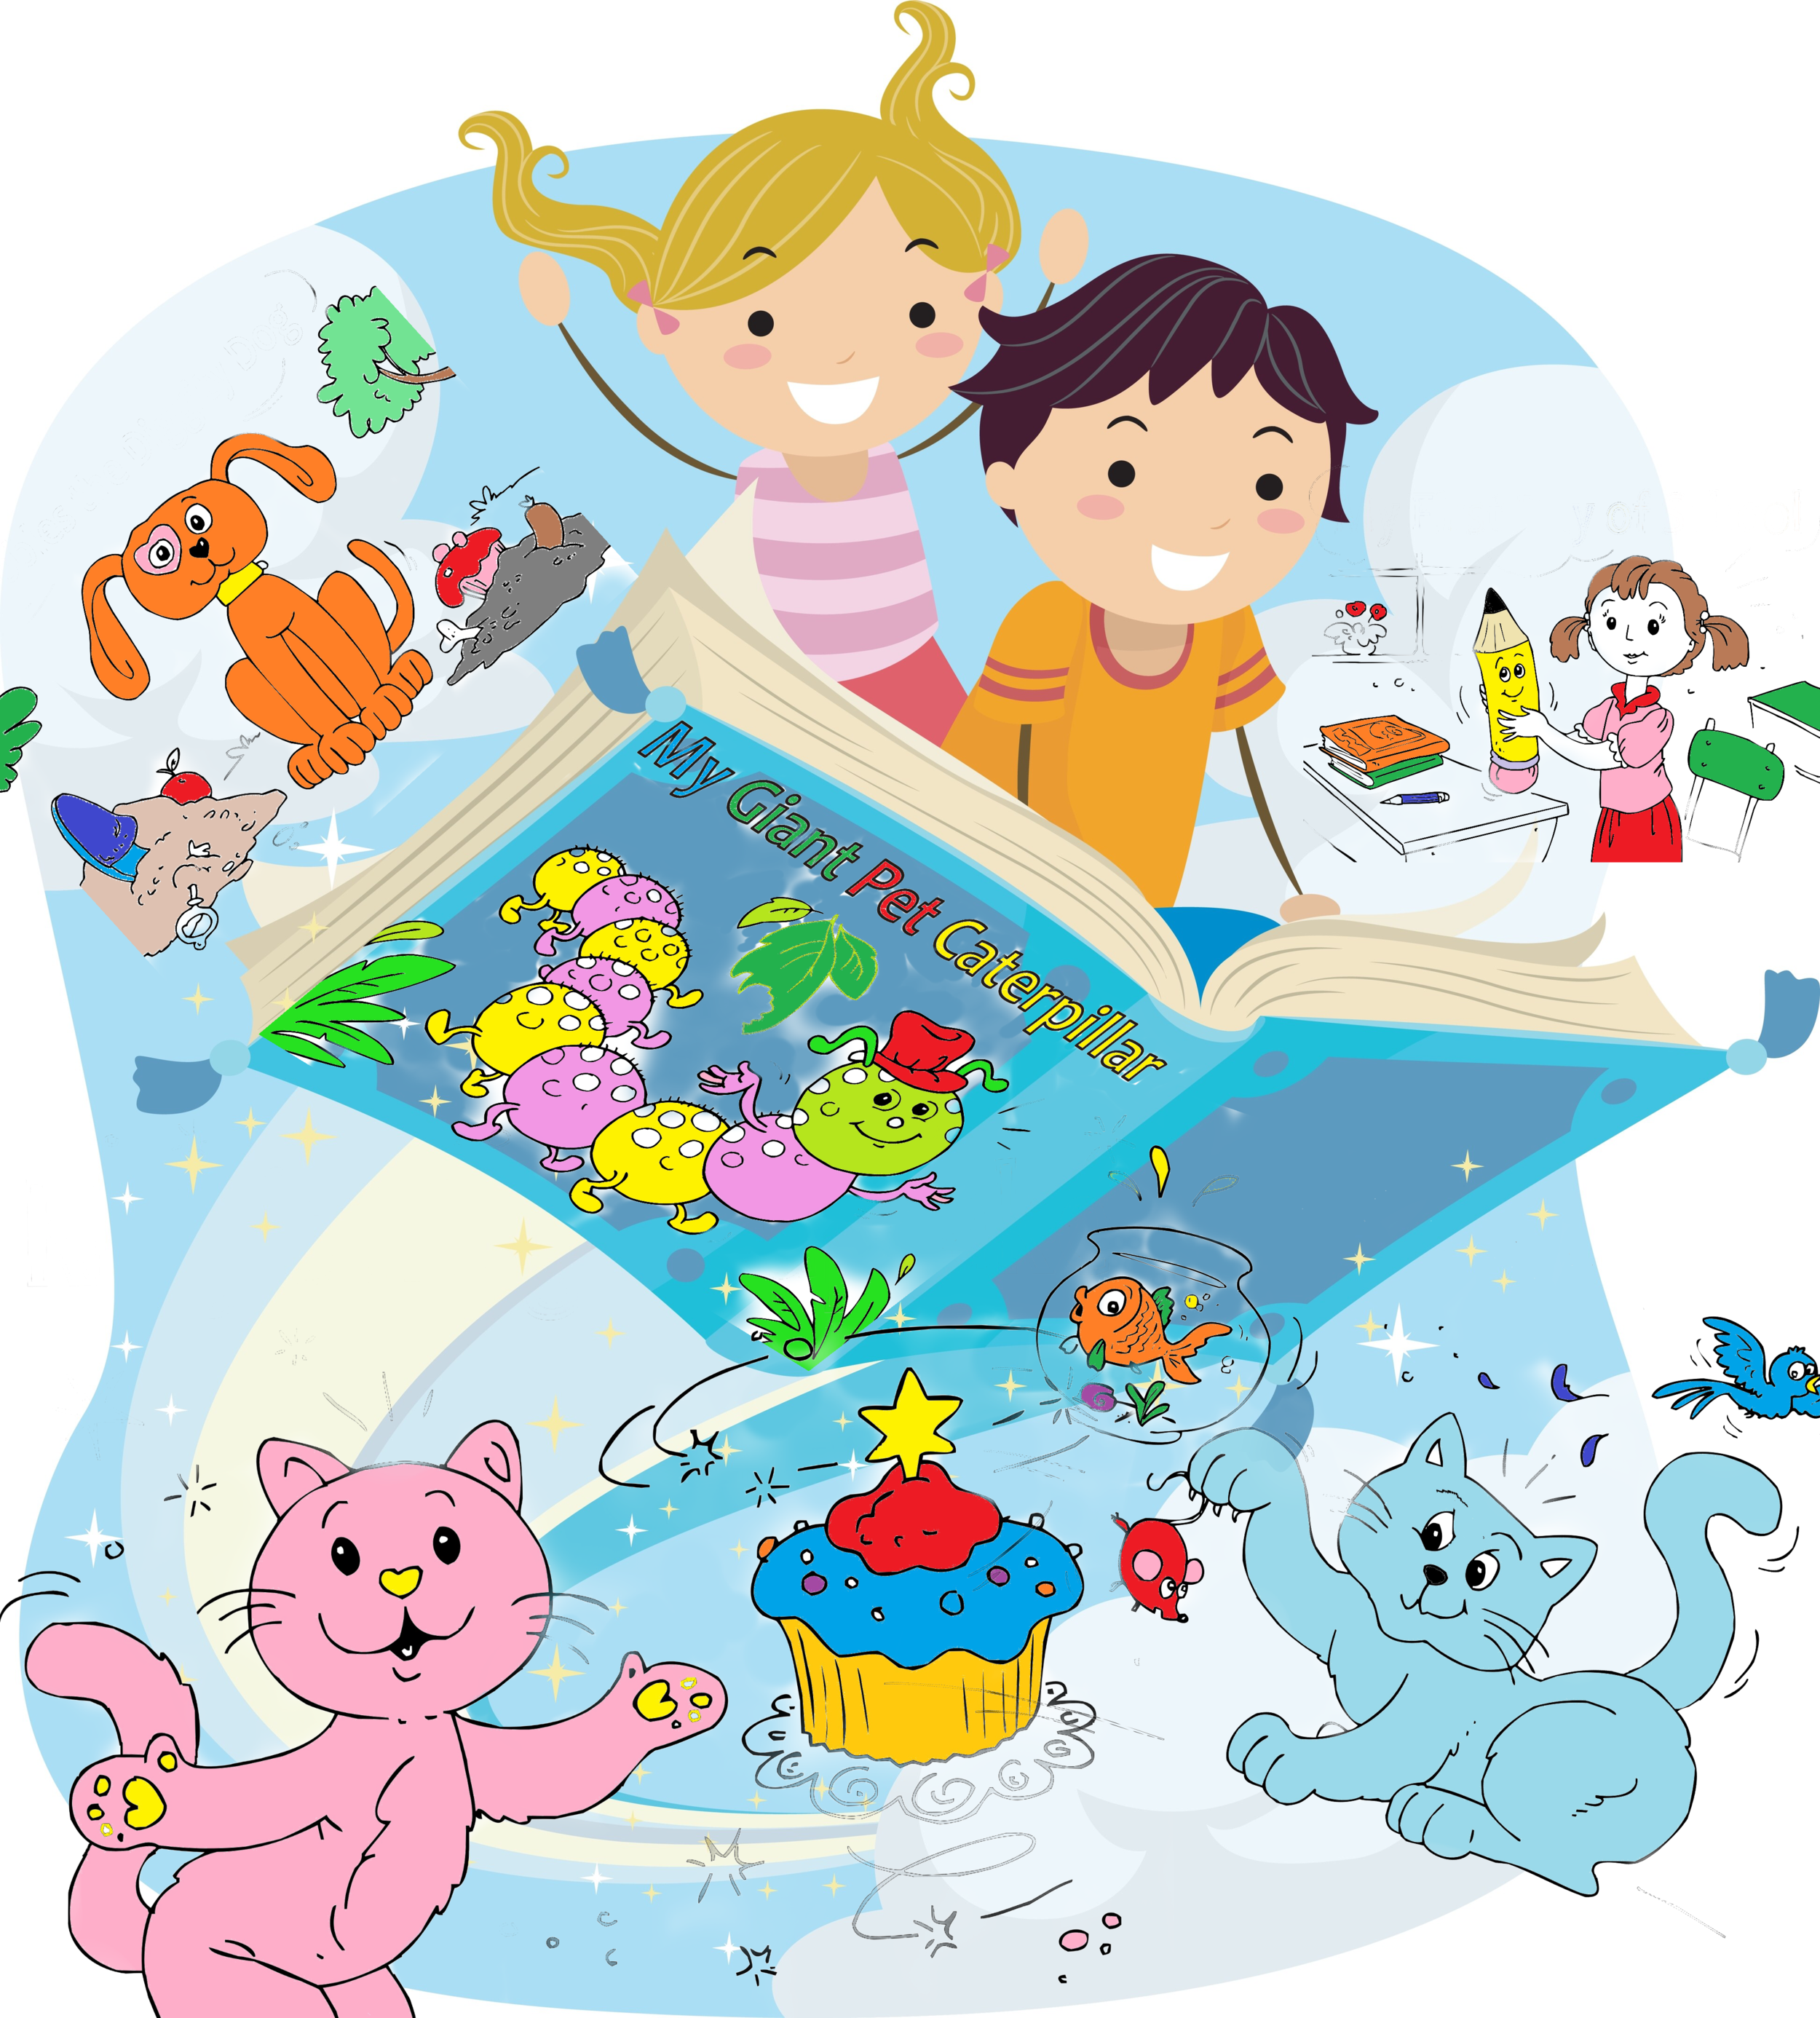 Coloring Storybooks - Printable bedtime coloring storybooks for kids! The story pages are coloring pages so children can color and design their own storybook.